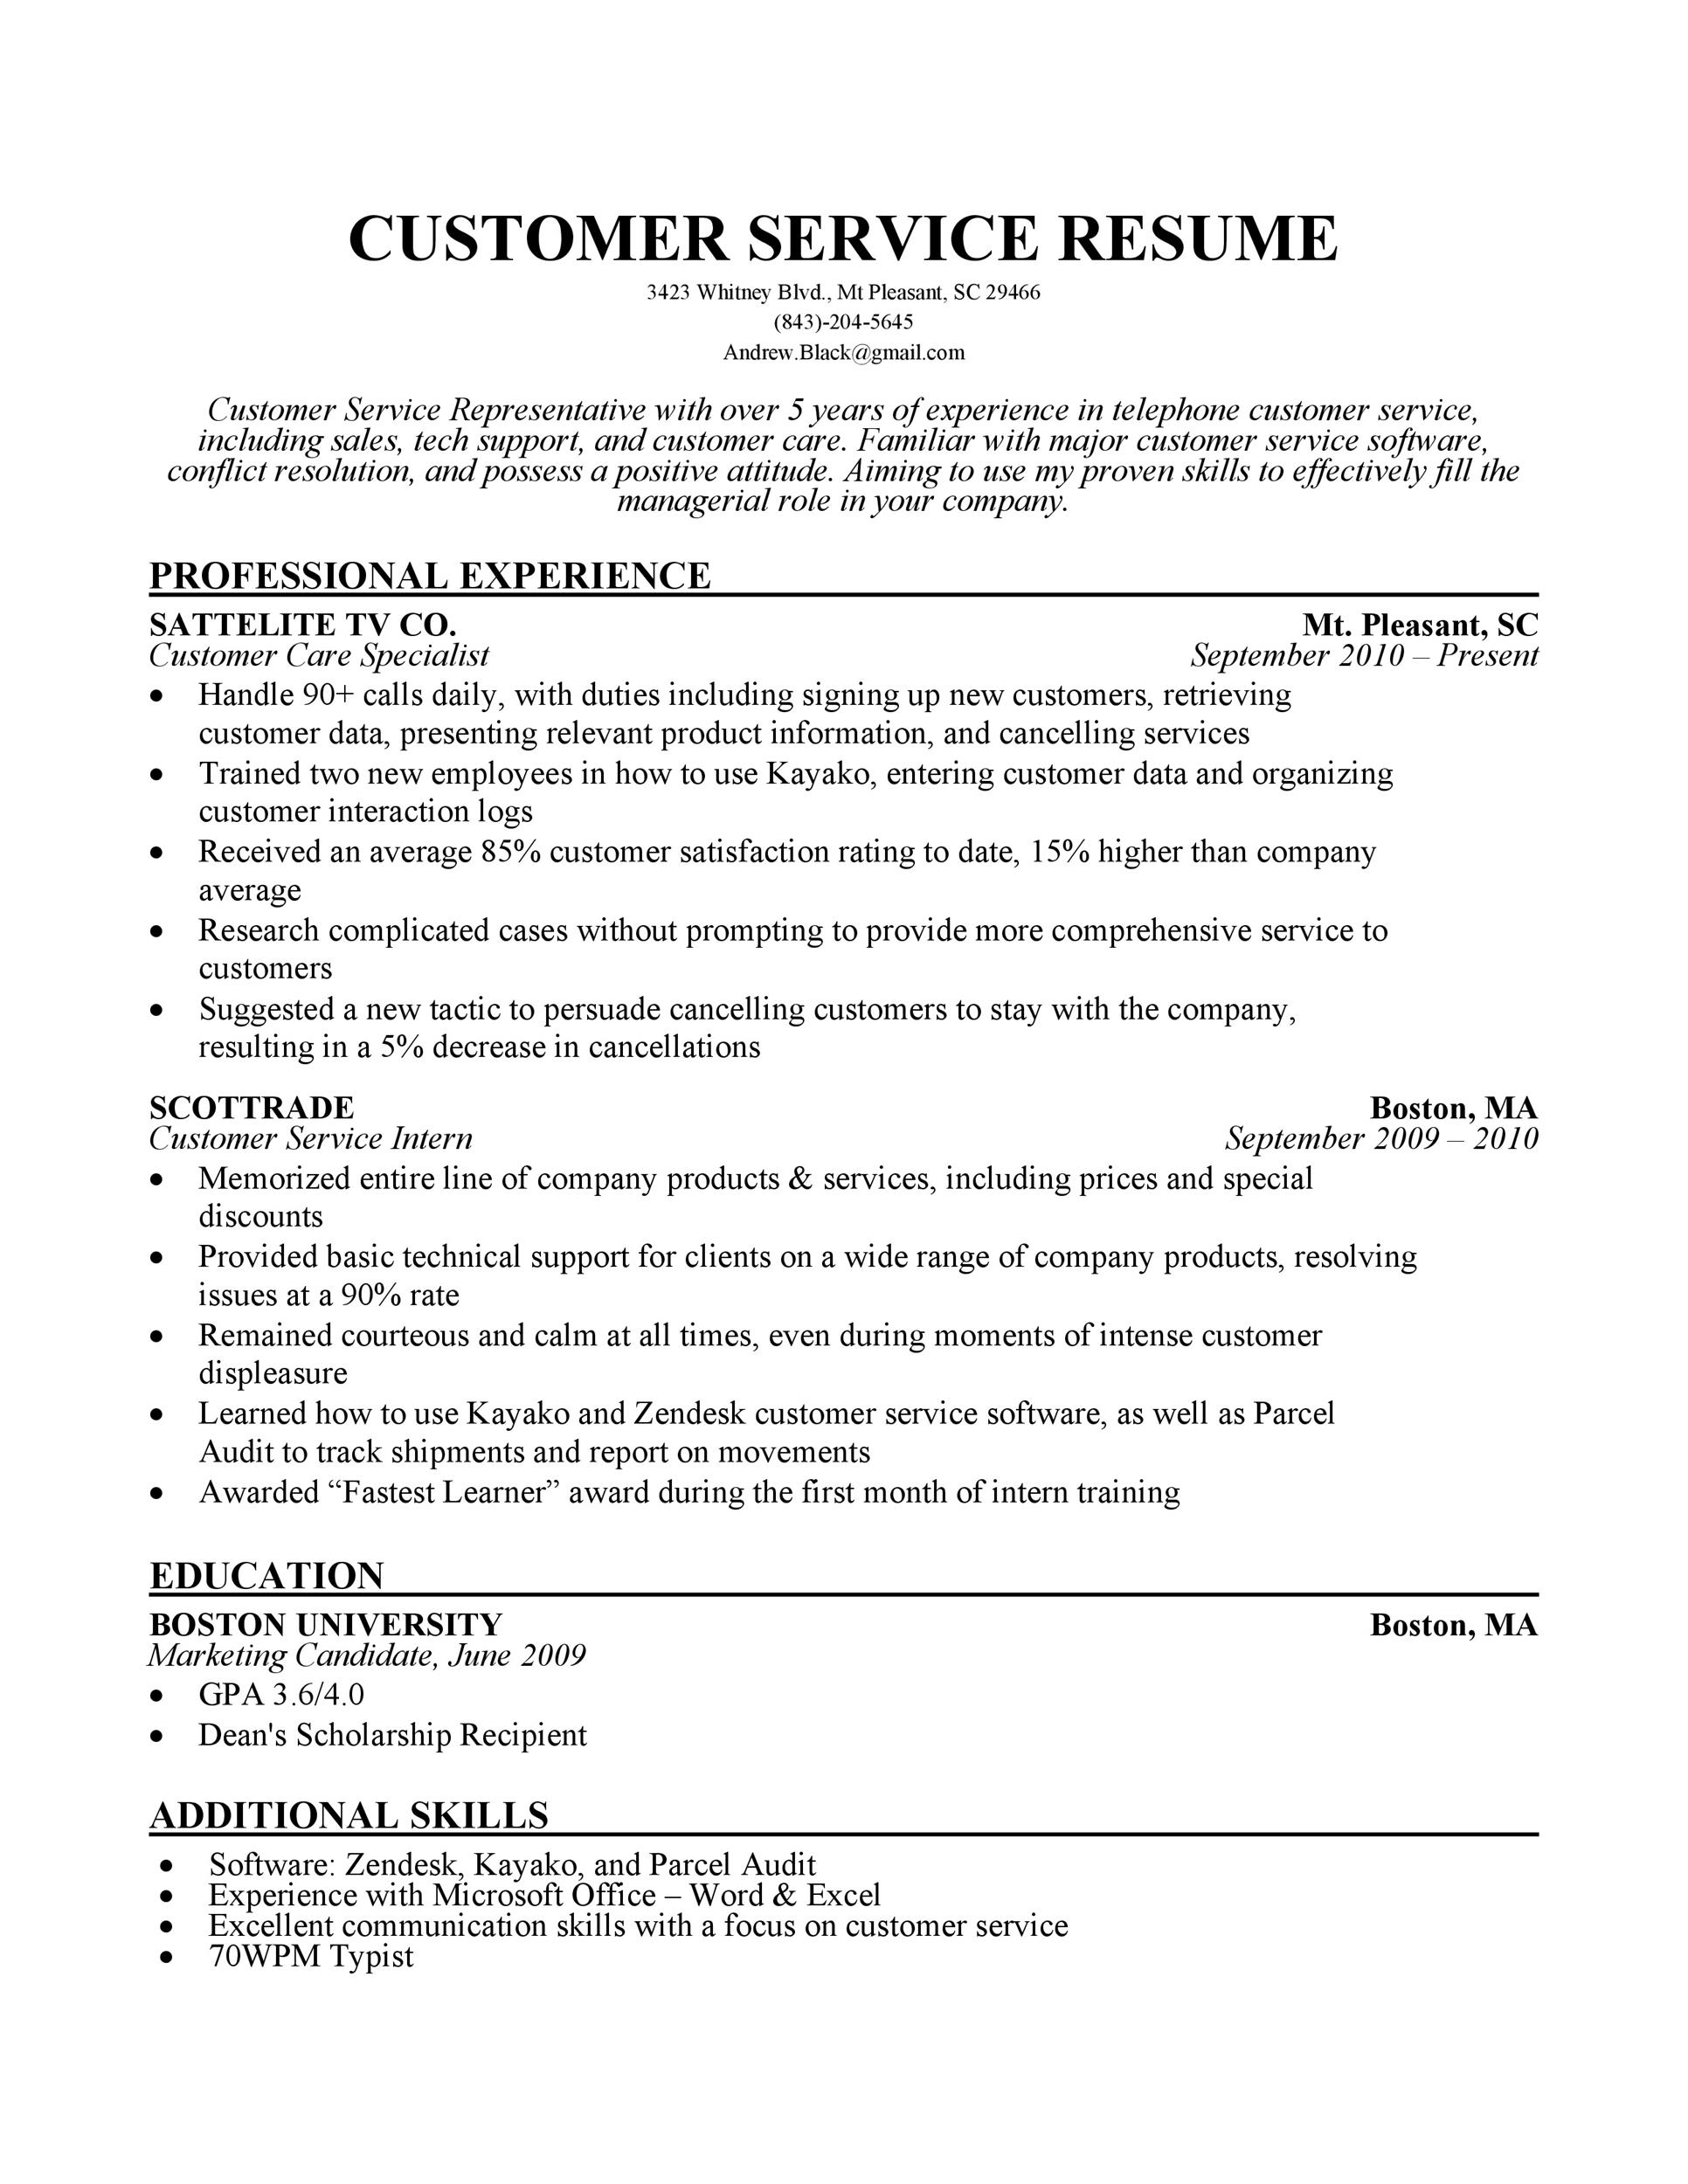 Free Customer Service Resume Template 25